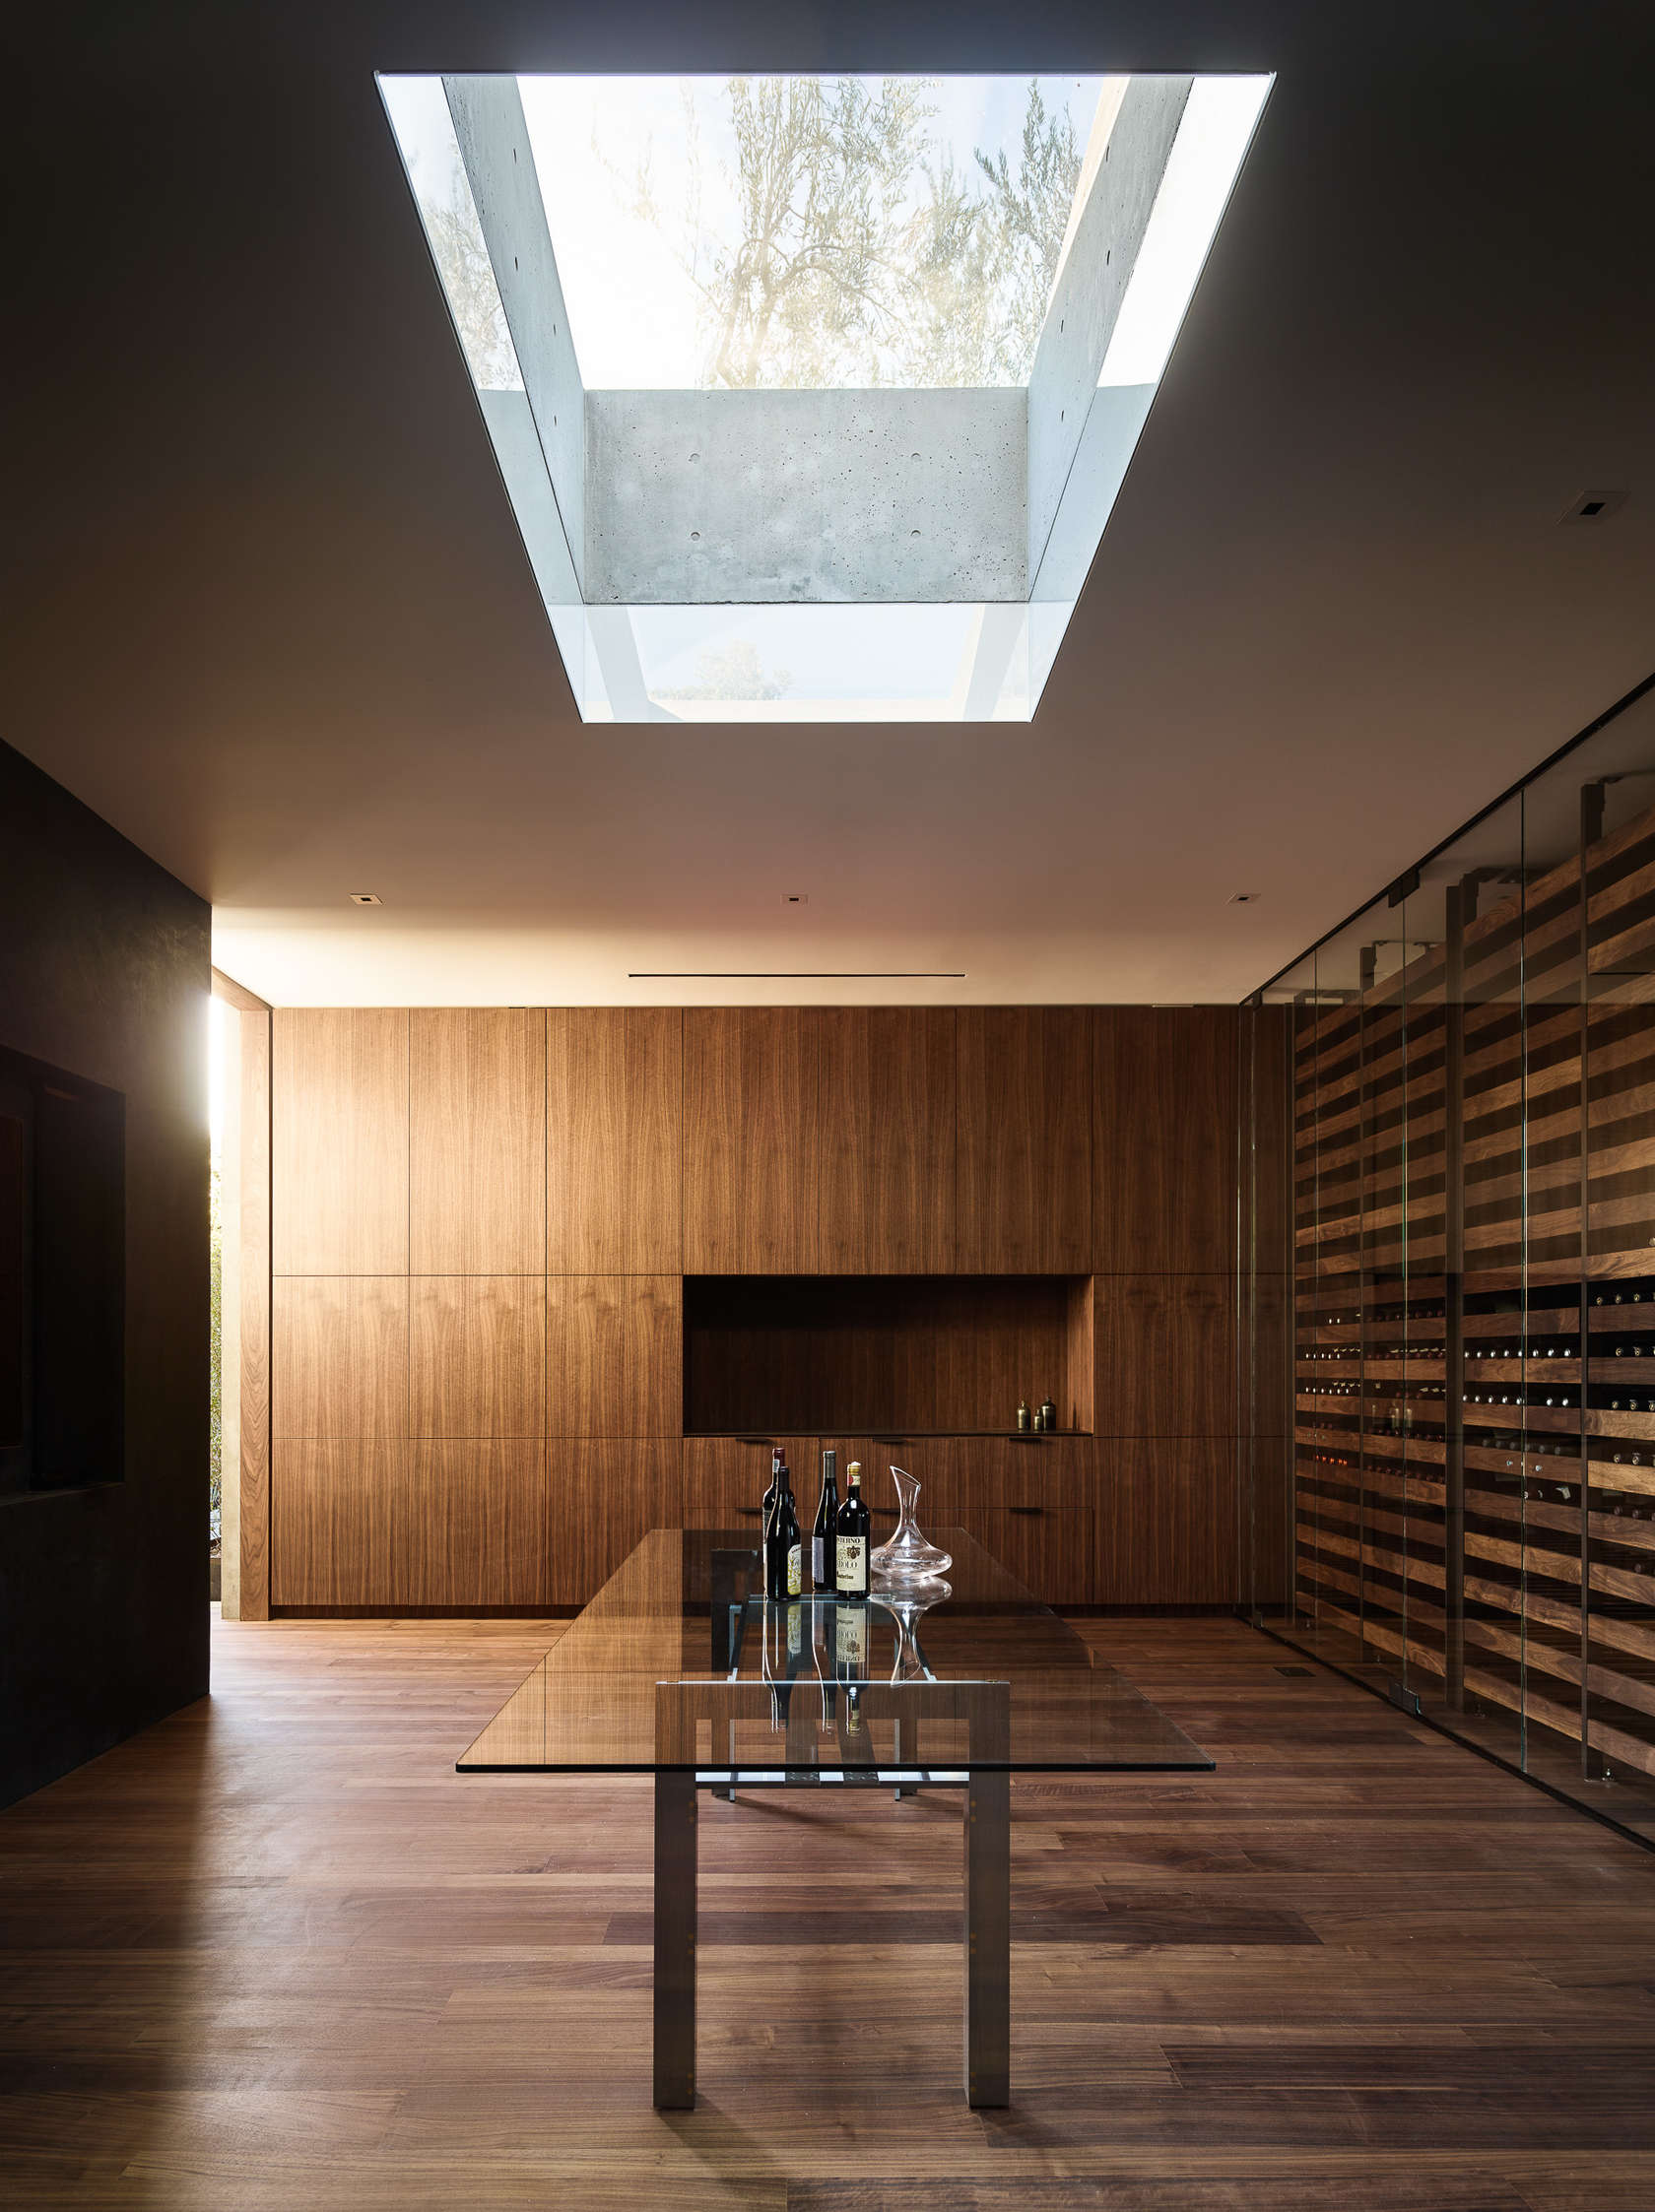 Skylight Design - An upside down beverly hills home with a minimalist exterior